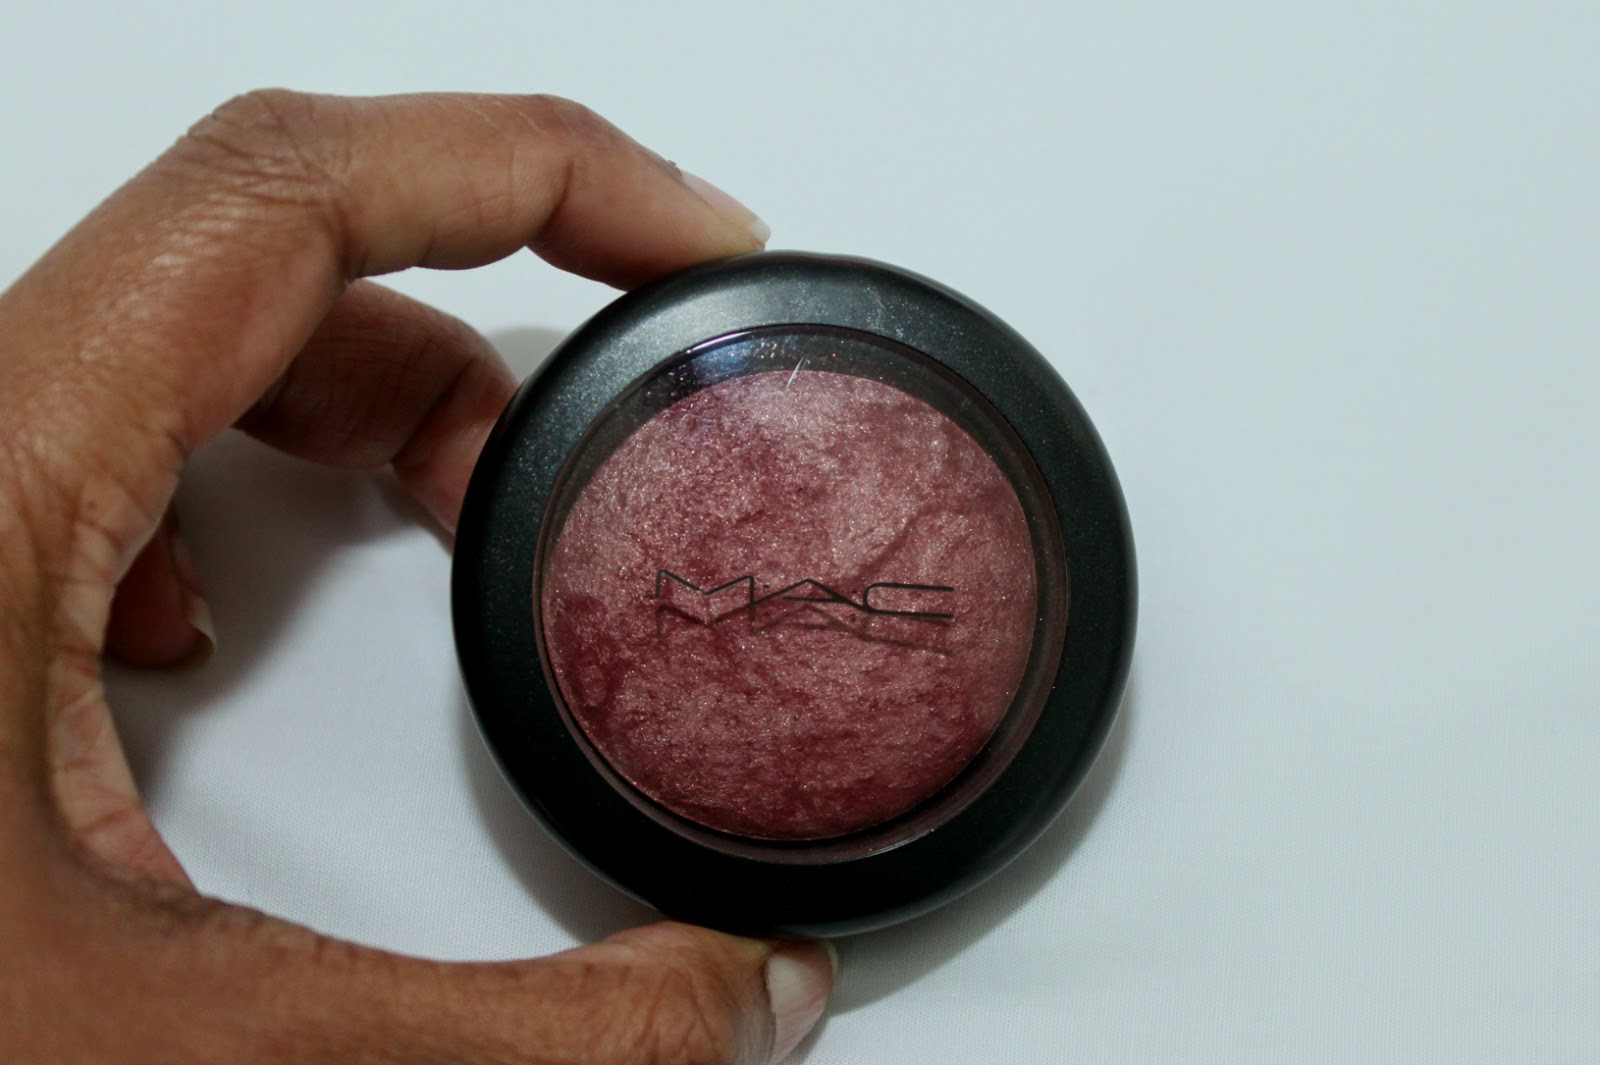 M.A.C MINERALISE BLUSH IN LOVE THING